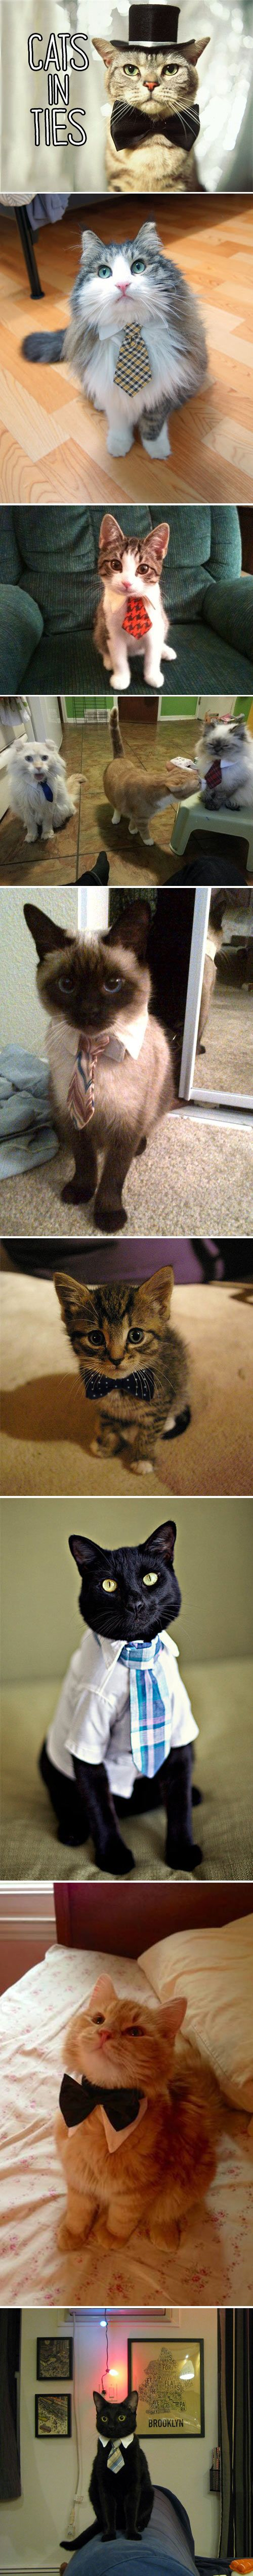 Classy cats wearing ties...